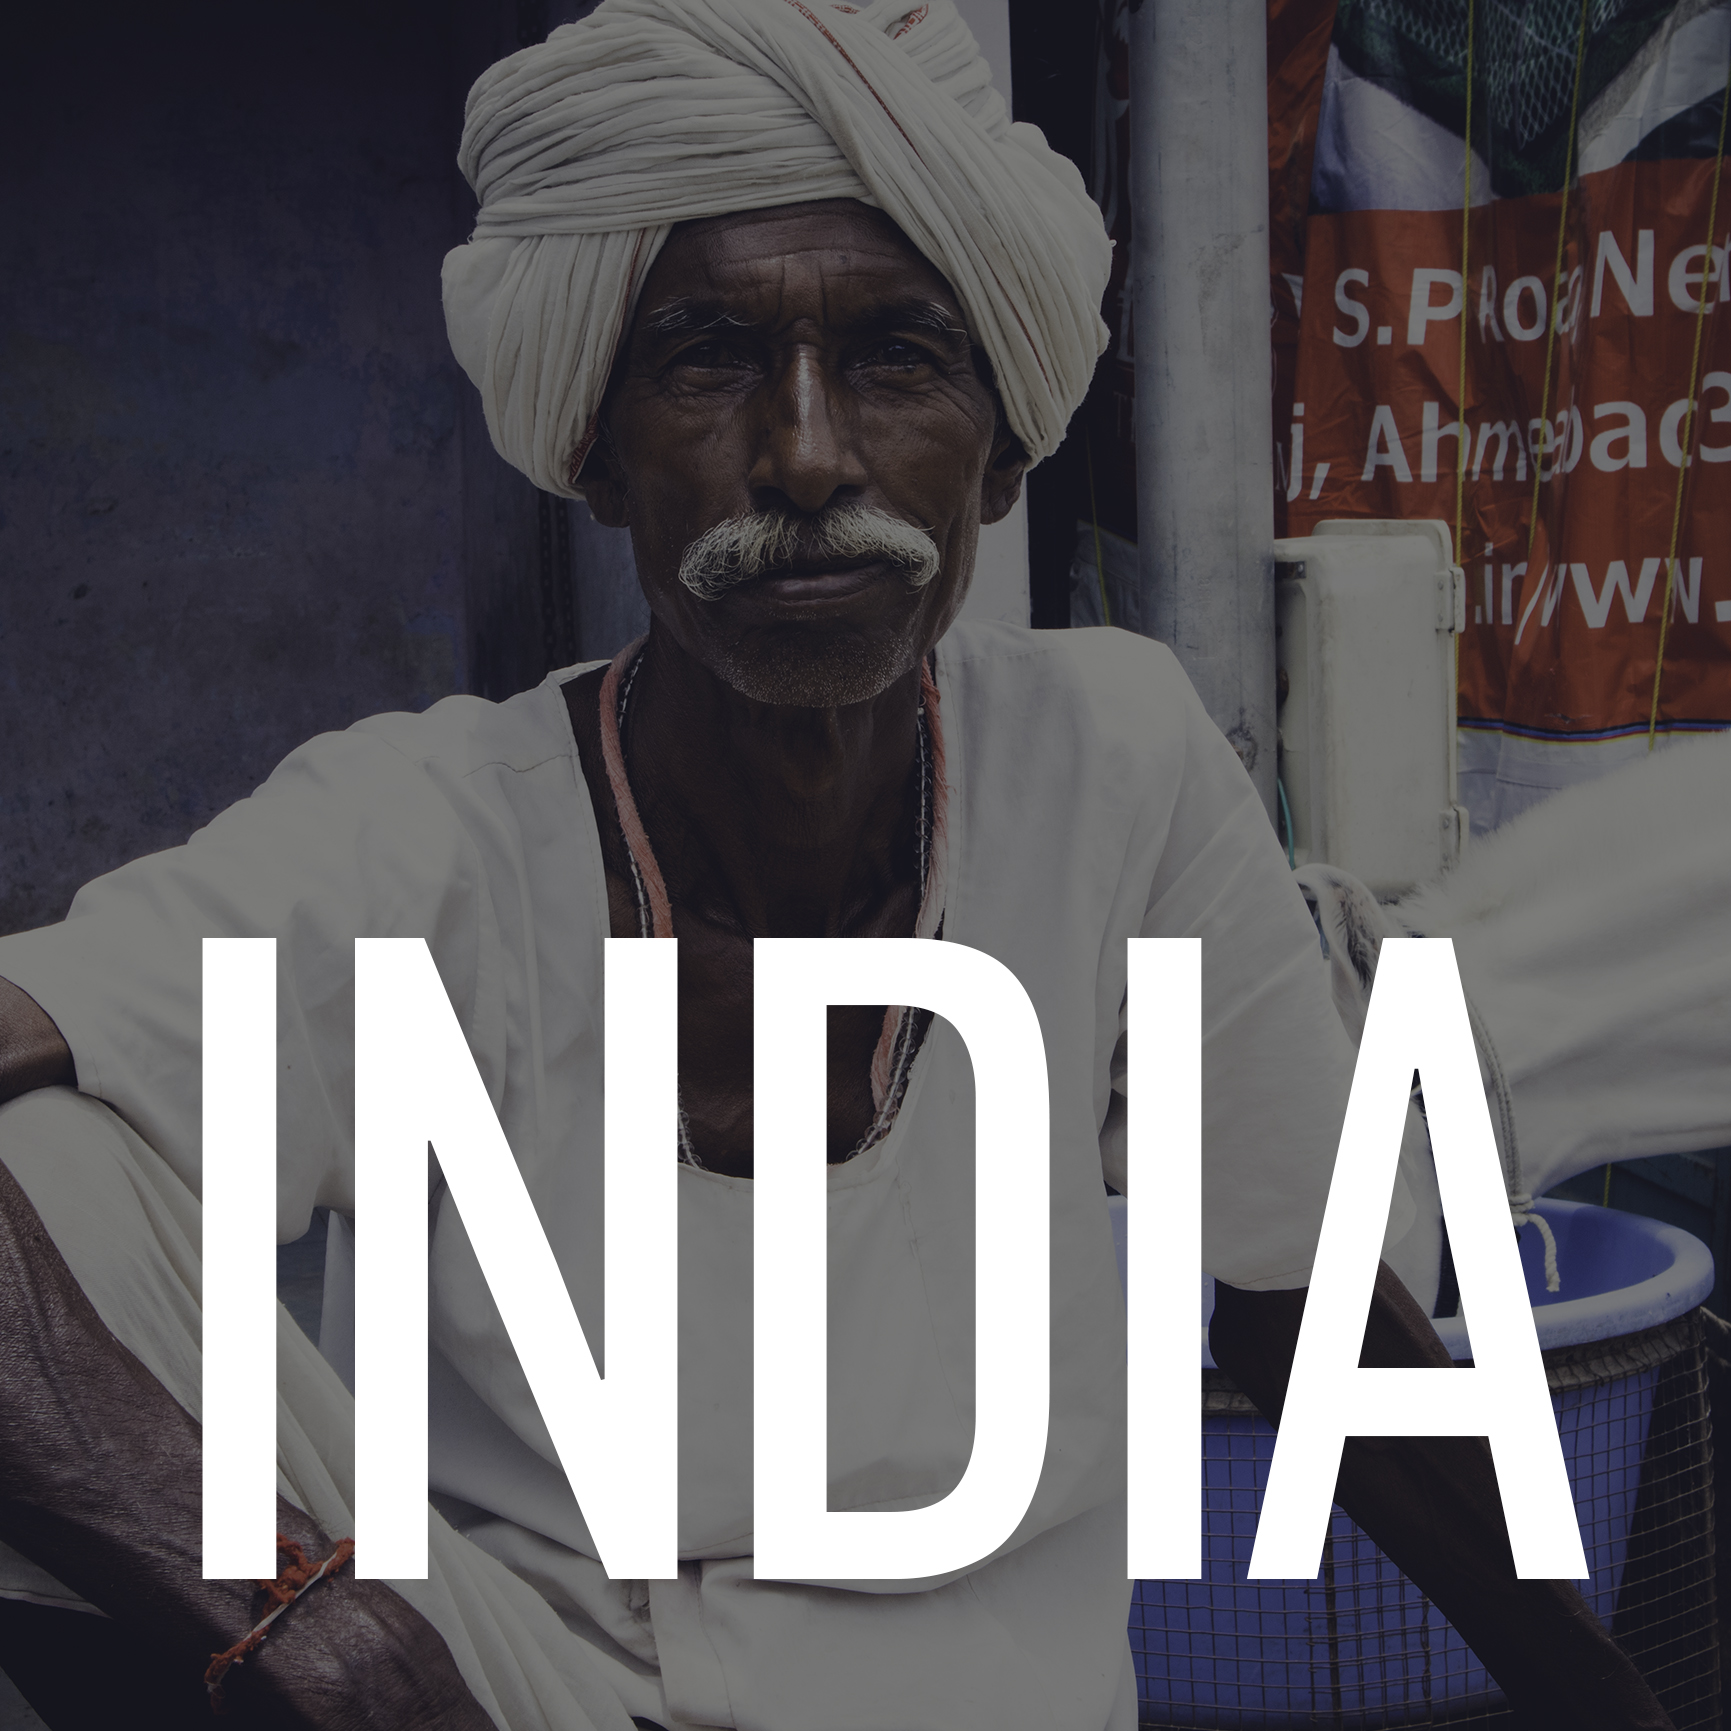 Pray for sent Harvest missionaries working in an unreached area of India to reach those people groups with the Gospel of Jesus Christ. Working under business platforms, they are seeking to share the Gospel with people who have never heard it, equip believers to make disciples, and see new churches planted .